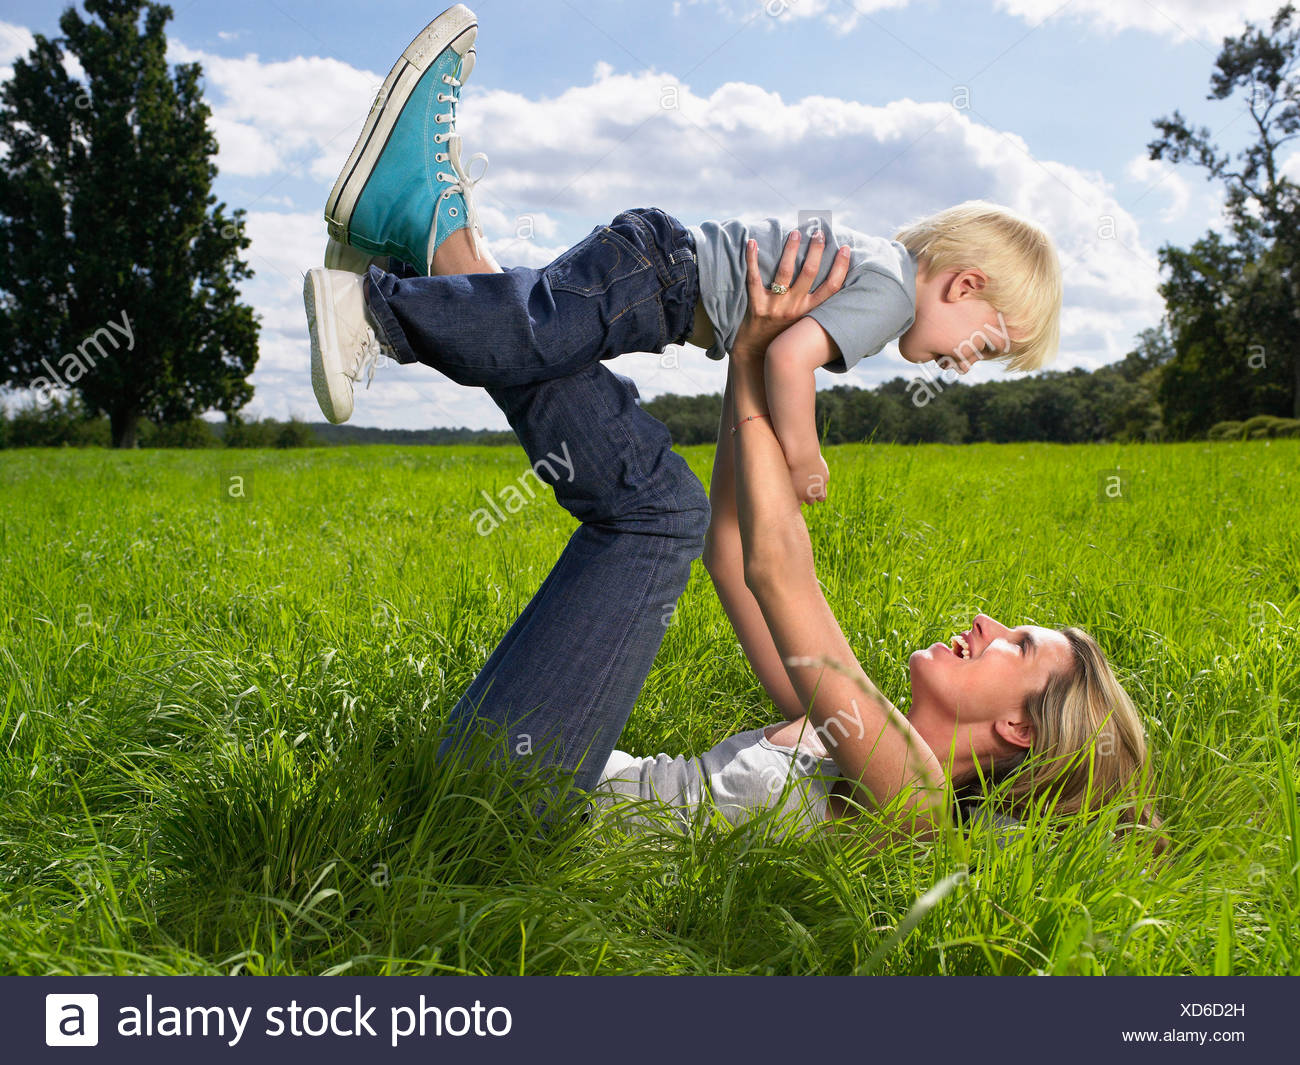 Mother and son playing in a field. - Stock Image